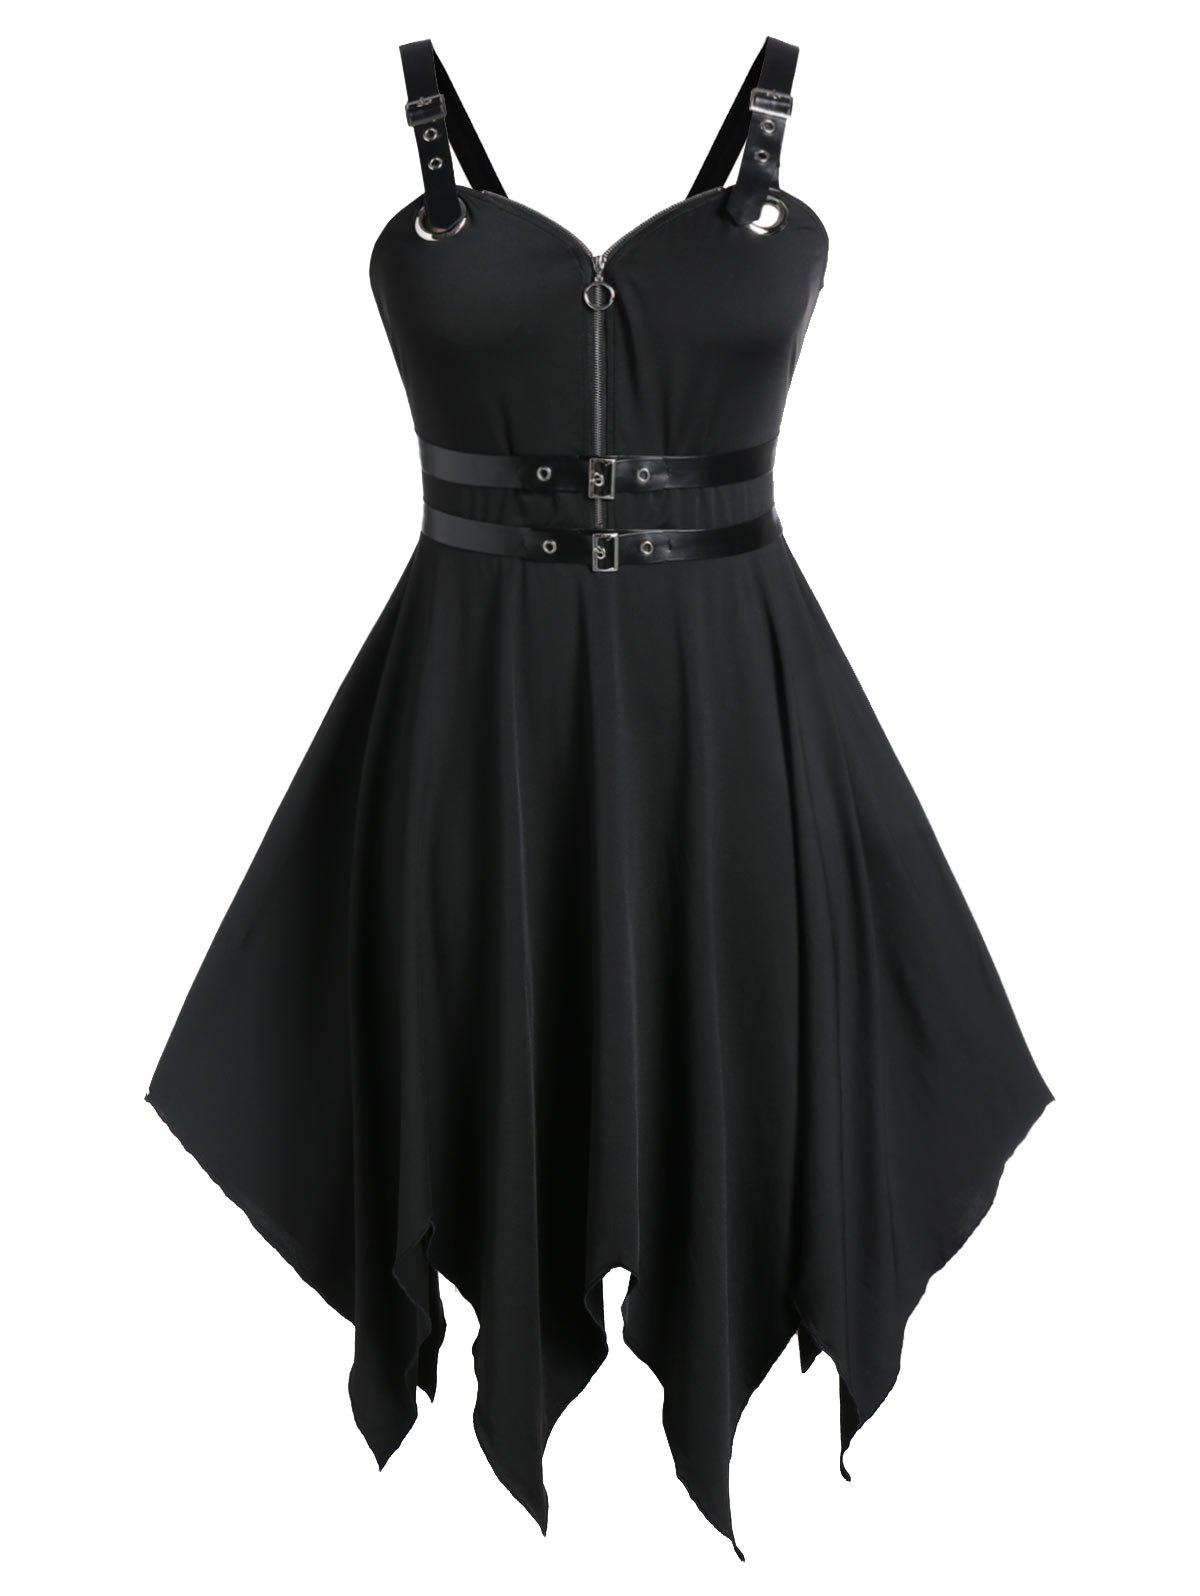 Plus Size Halloween Buckle Straps PU Trims Punk Dress - BLACK 5X